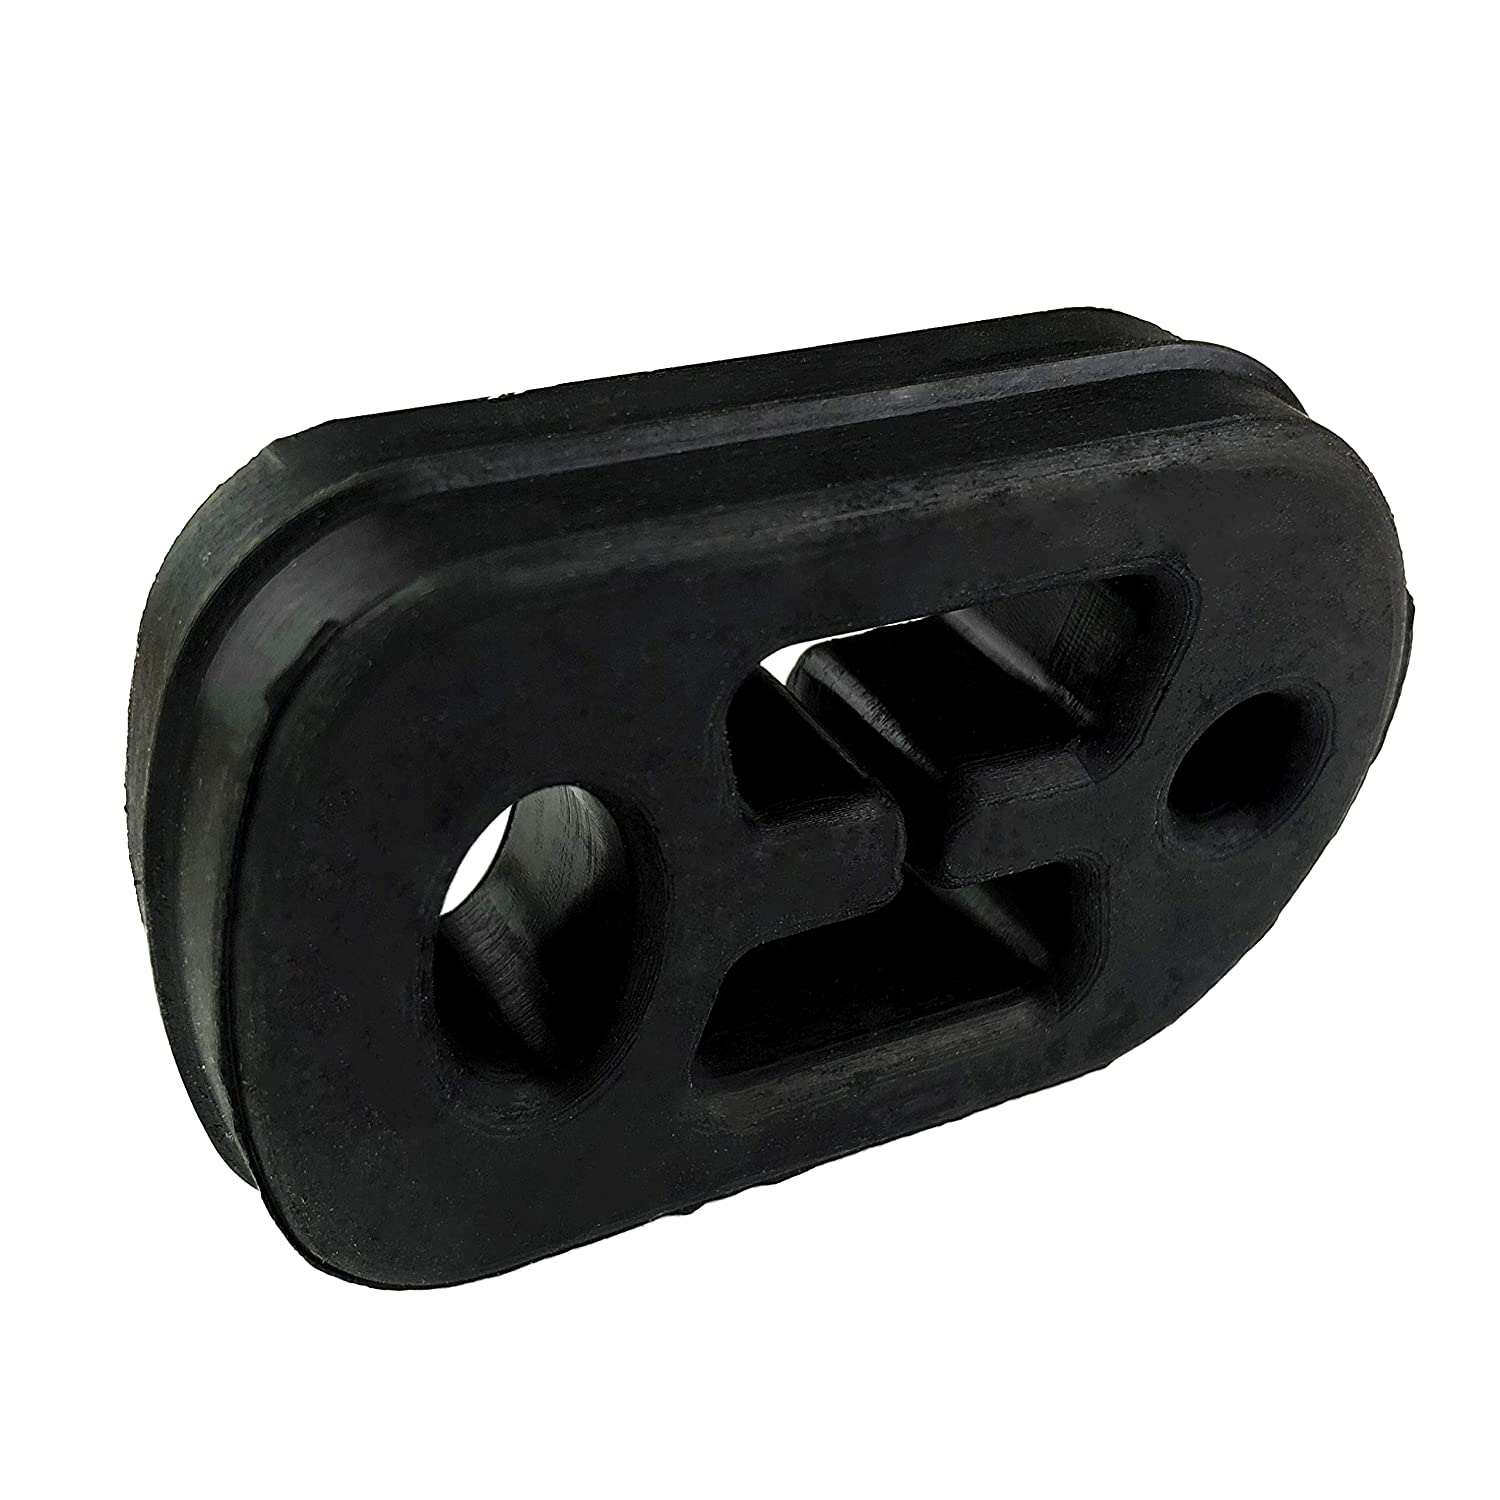 Pack of 2 Exhaust Hanger Pipe Rubber Insulator Mount Bracket Bushing Car Vehicle Universal Black 12mm ID 2 Holes